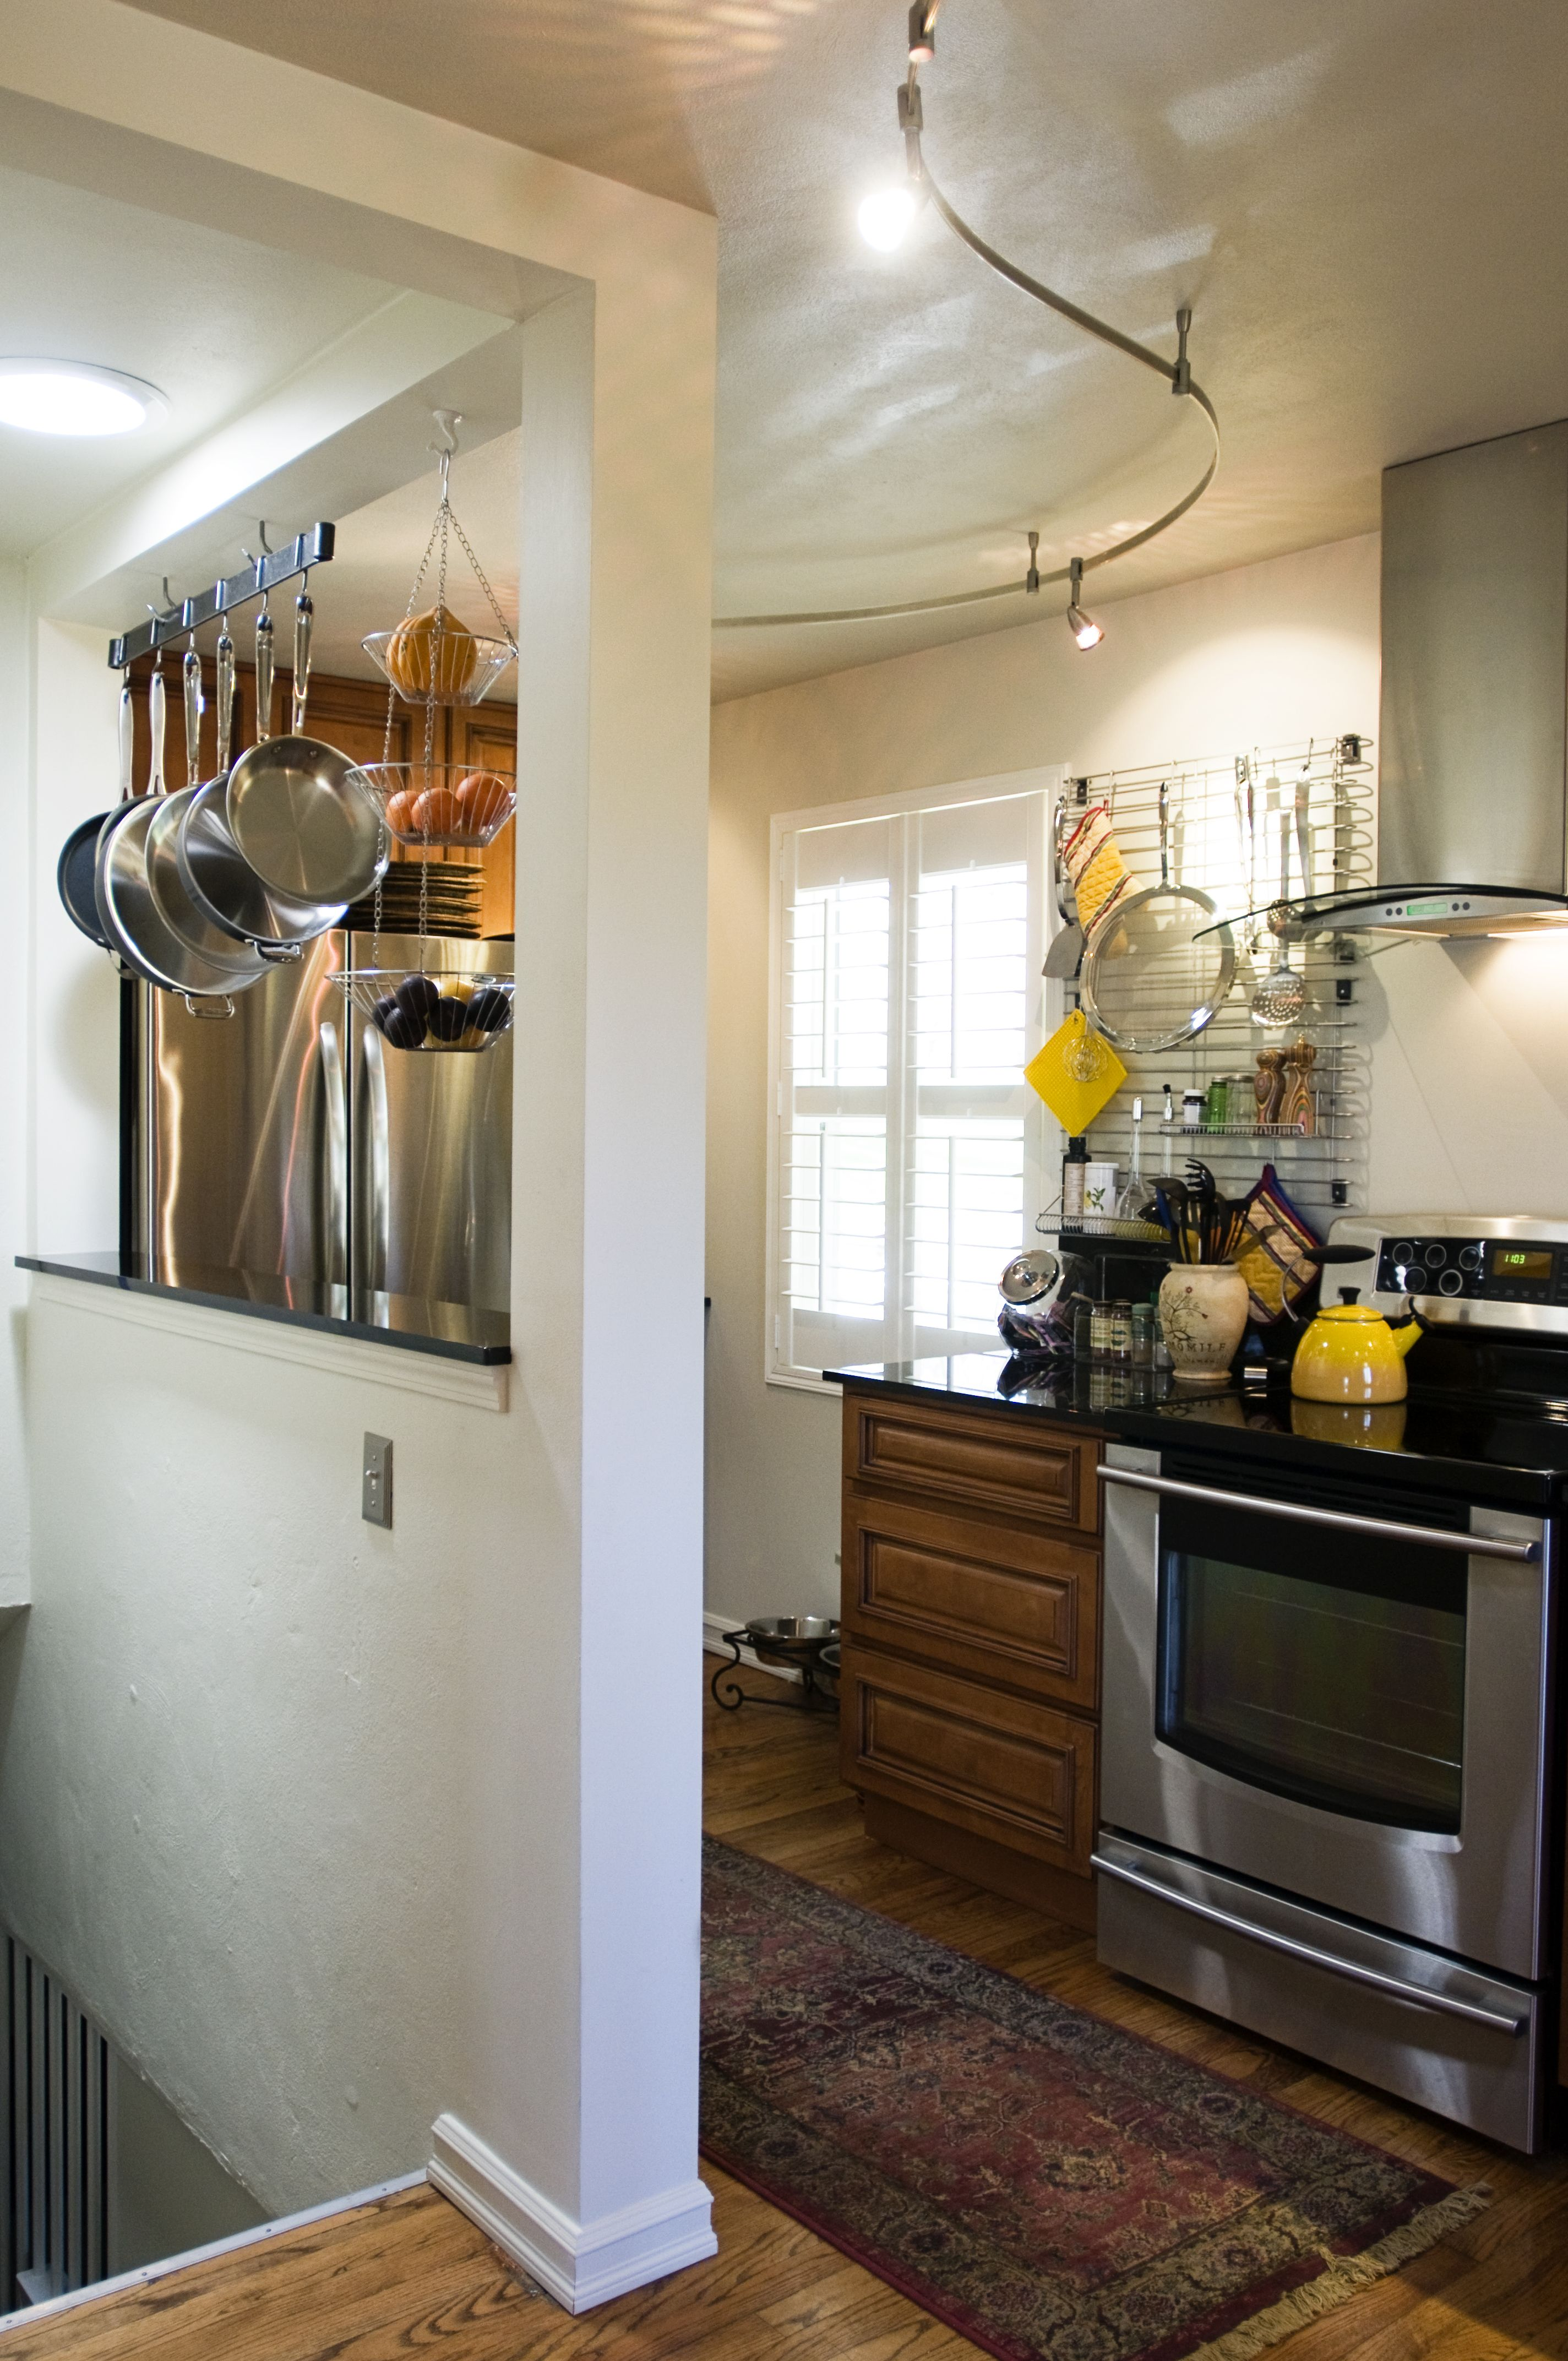 kitchen remodel removed door and half wall to create illusion of rh br pinterest com